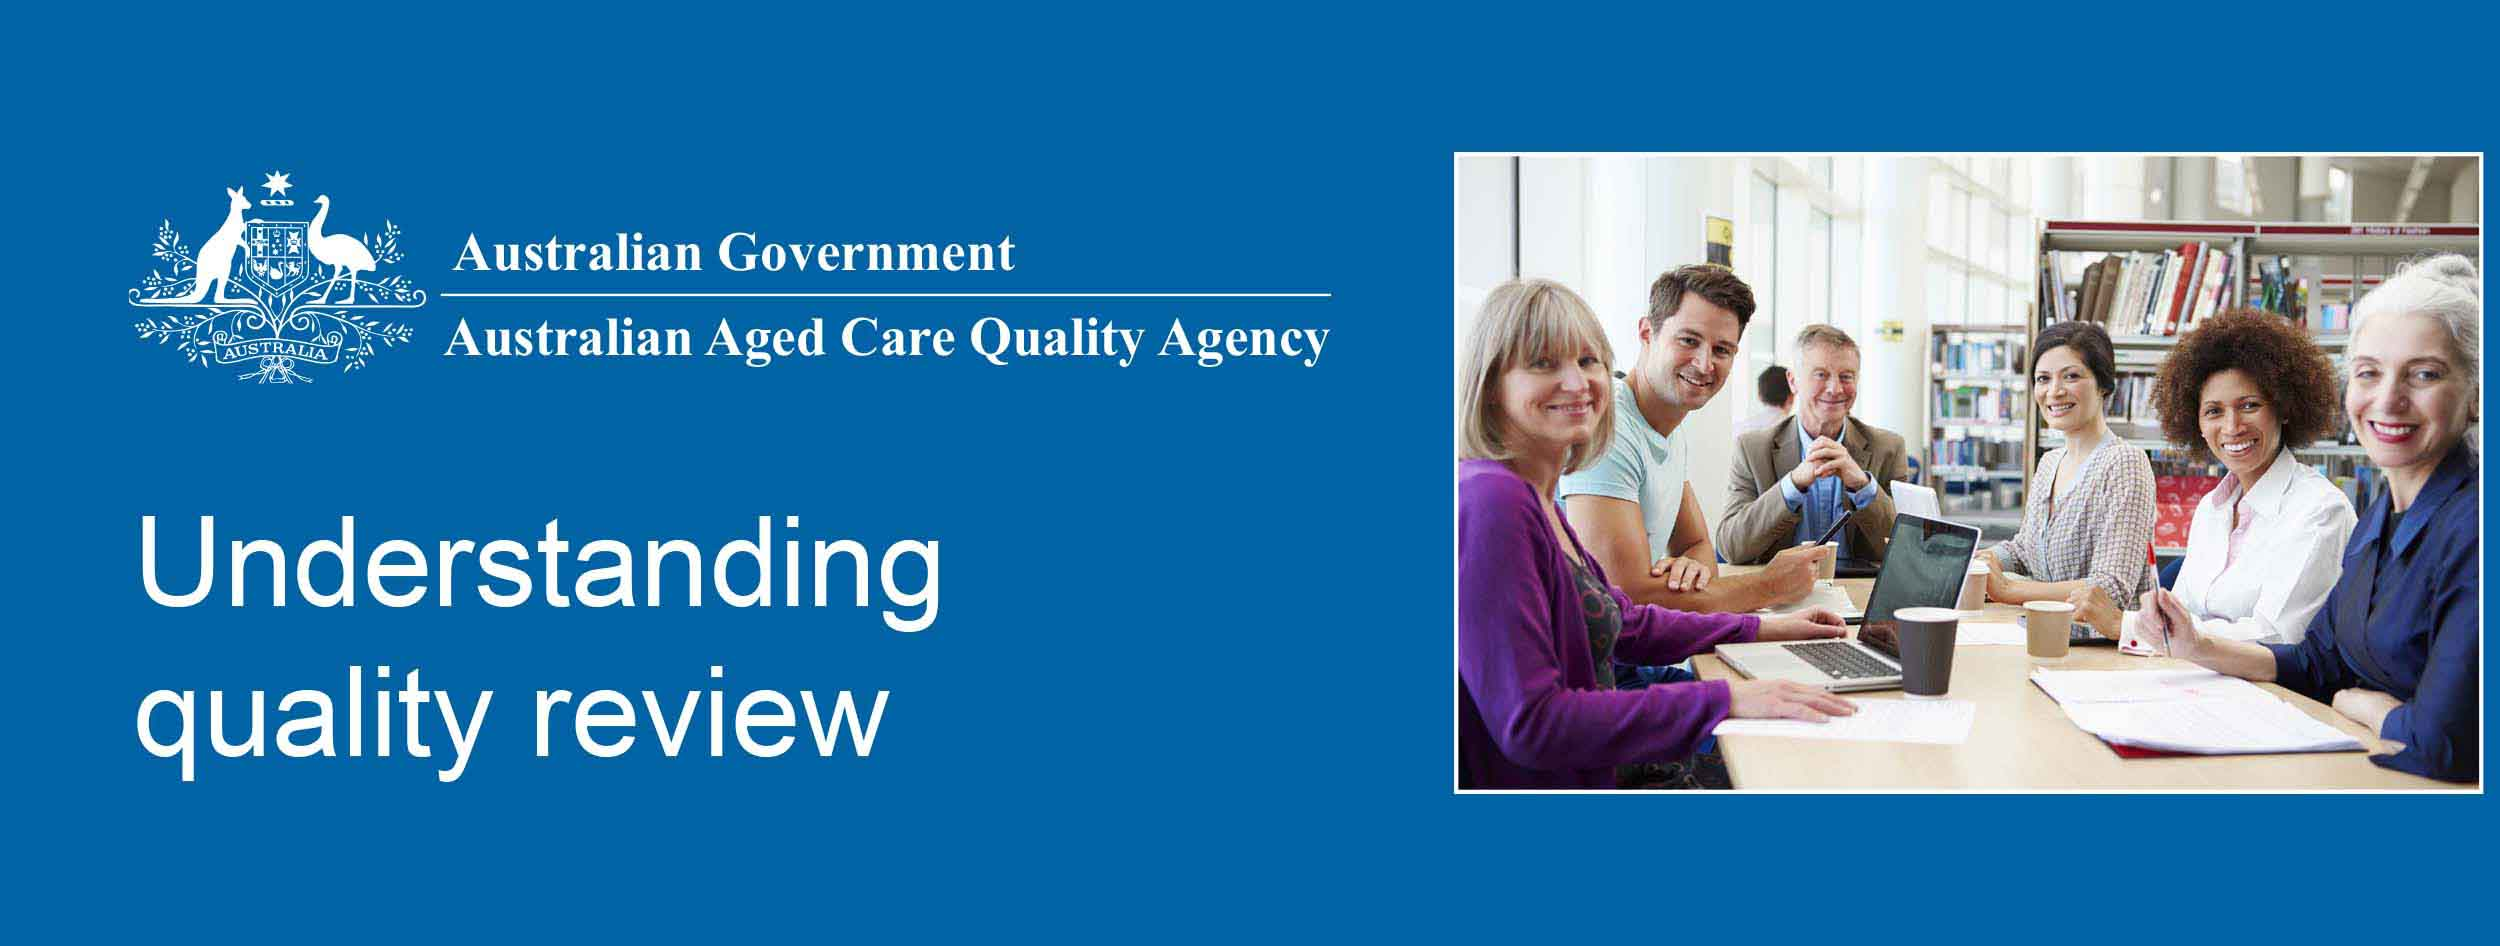 Understanding quality review - Brisbane - 20 - 21 March 2018